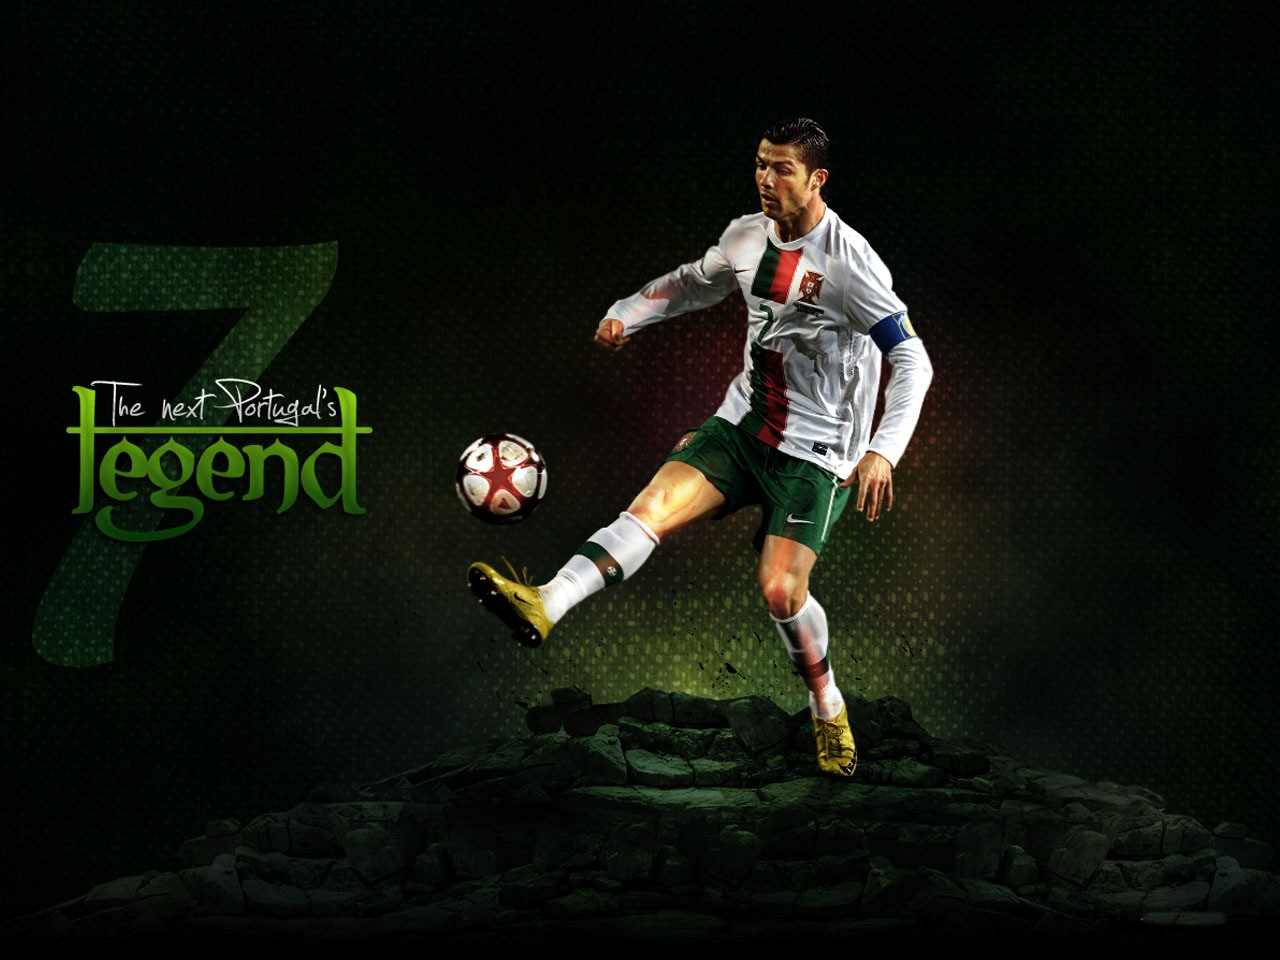 Cristiano ronaldo wallpapers hd spirit players cristiano ronaldo wallpapers hd voltagebd Images